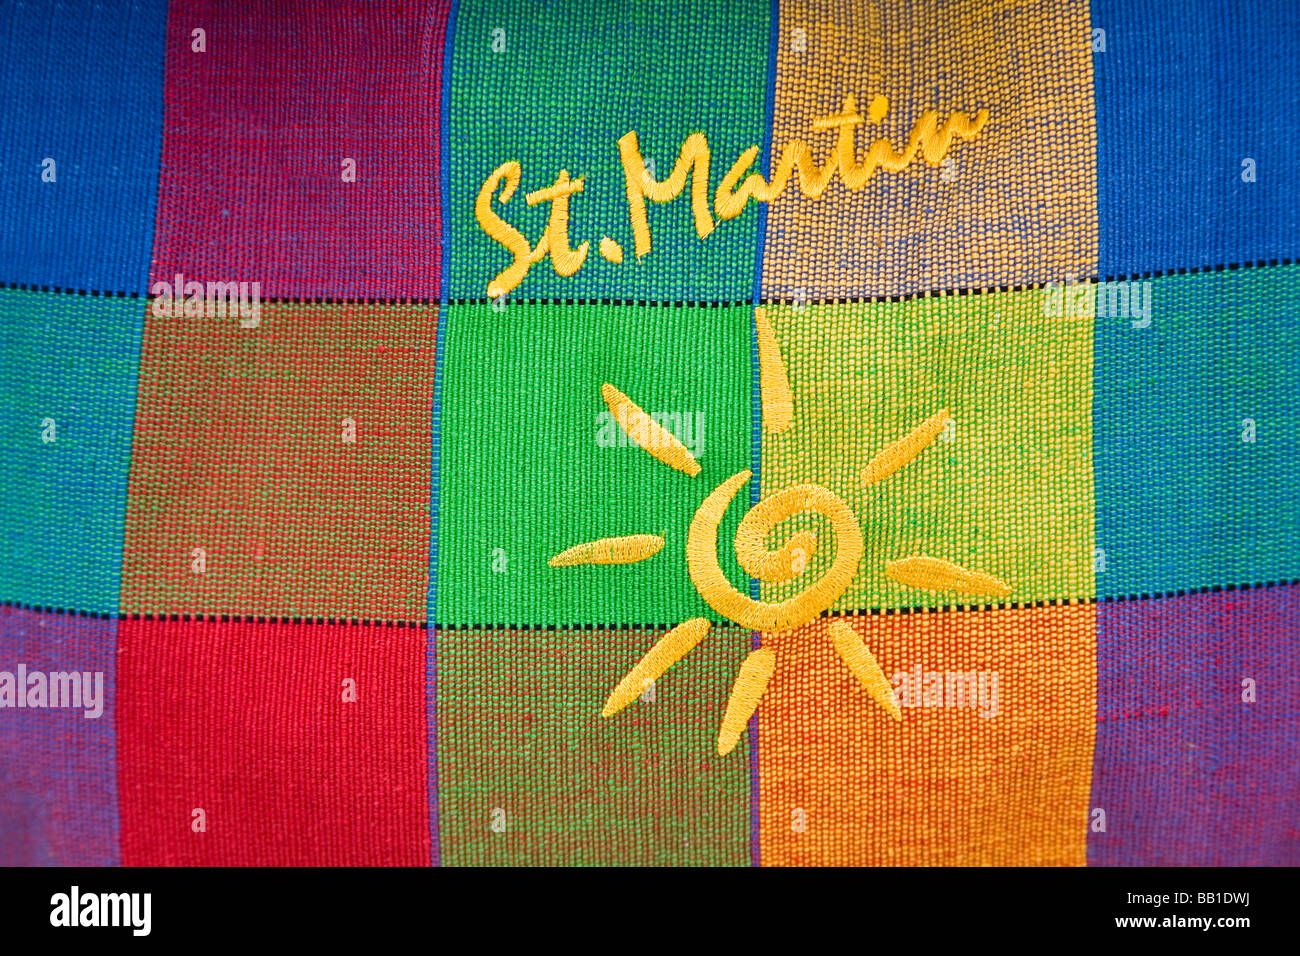 Close-up of multi colored bag; Marigot City, St. Martin Island, French Antilles, Caribbean - Stock Image